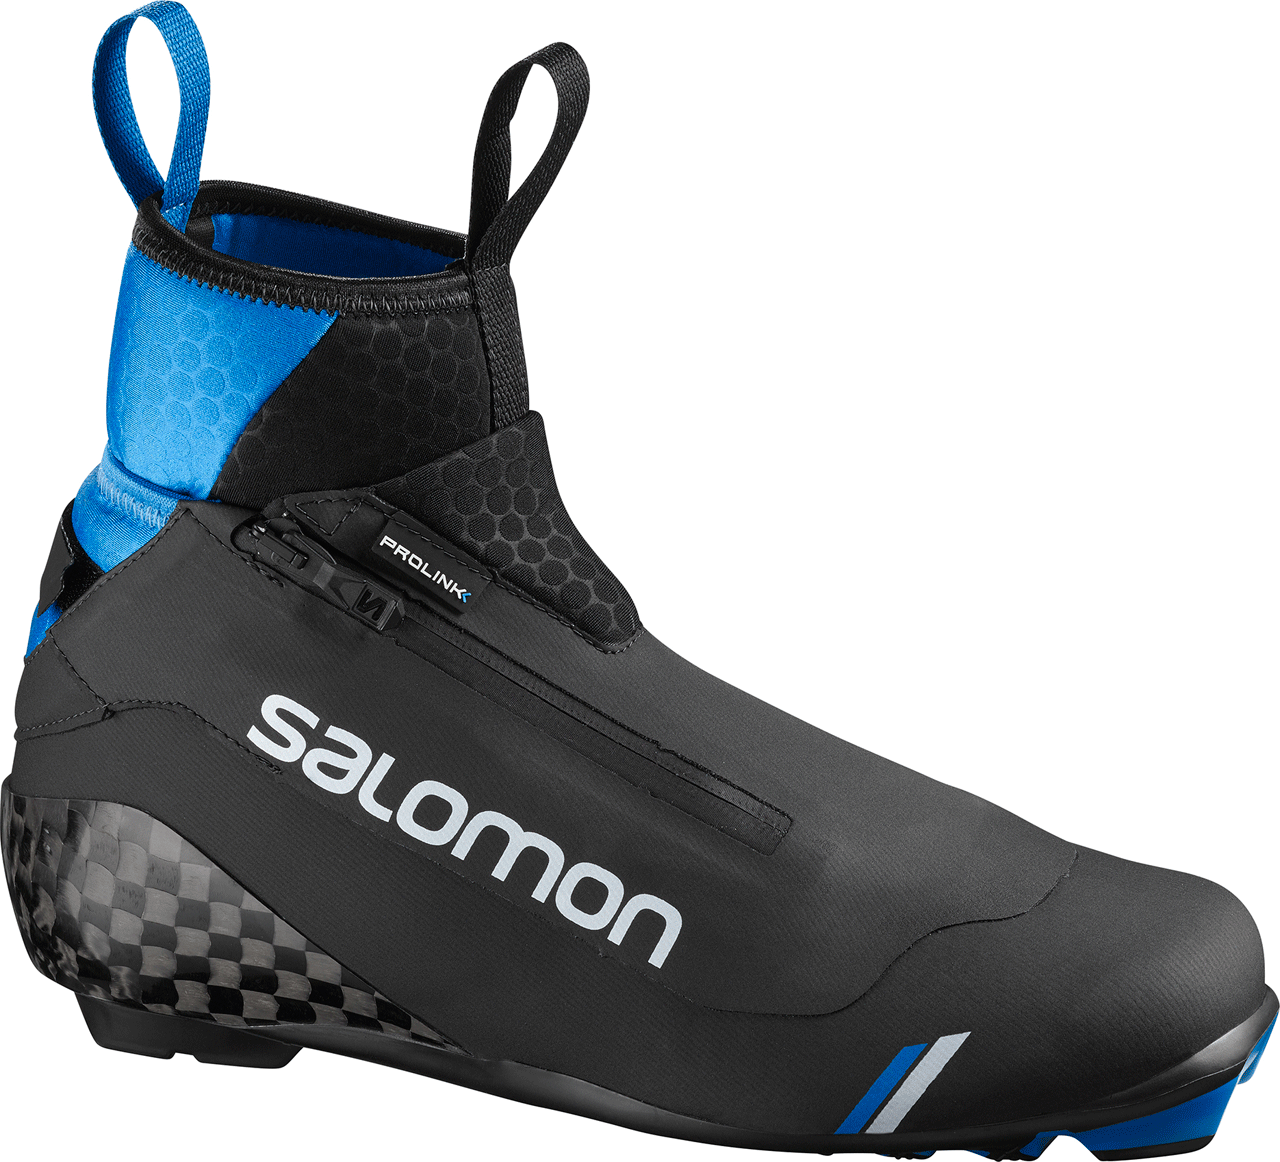 Salomon SRace Classic Prolink Boot